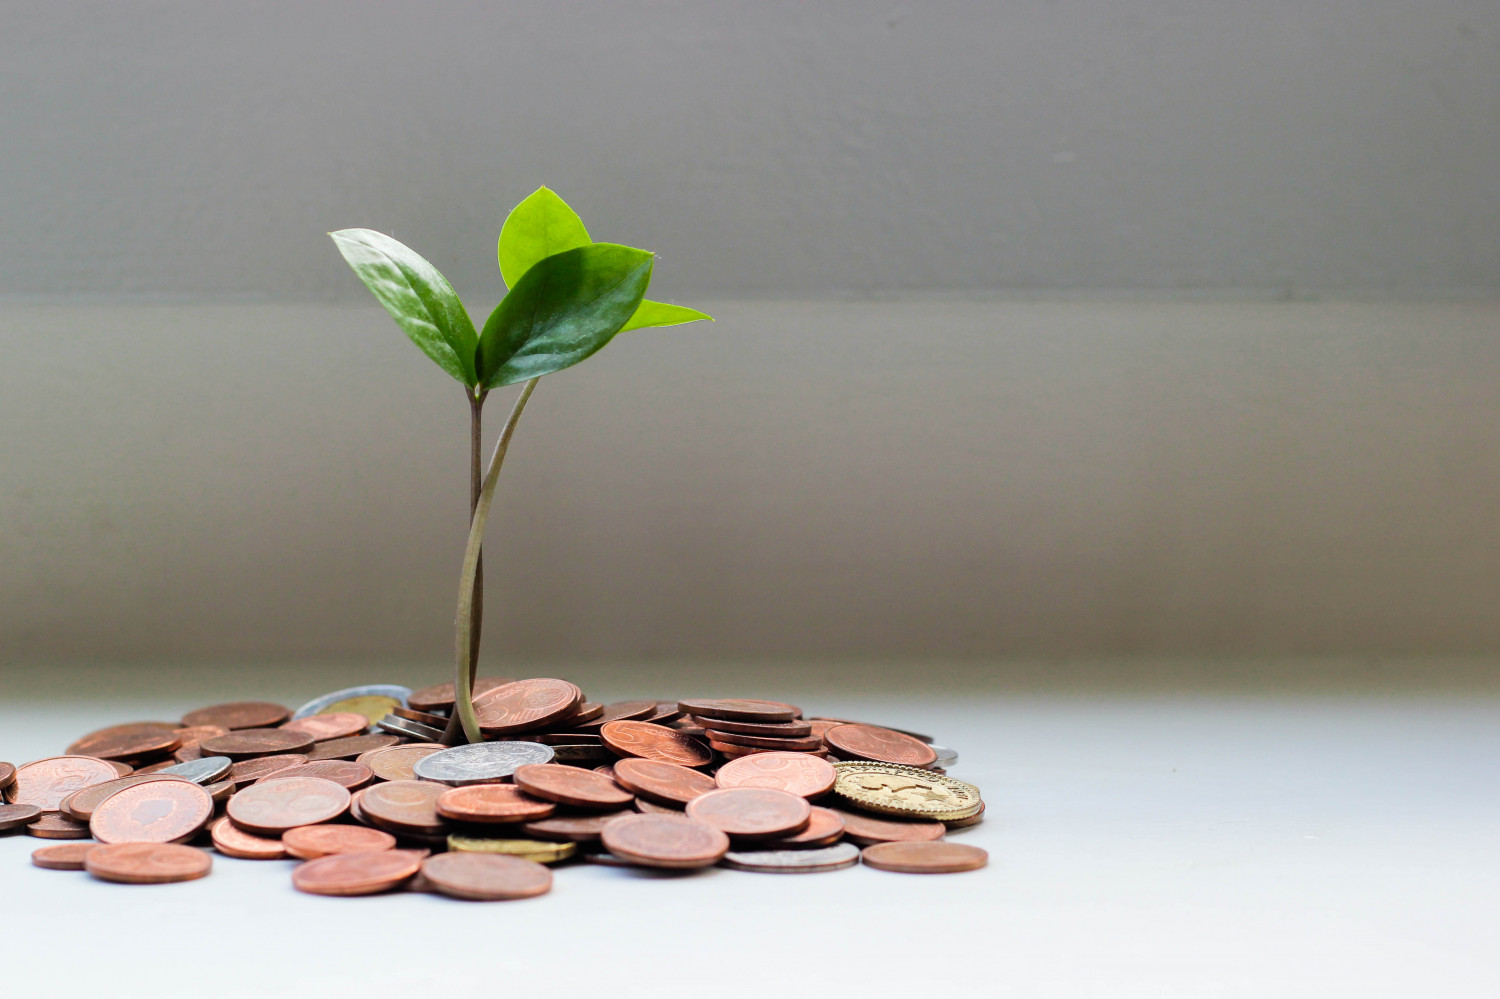 Image of a plant growing out of a stack of coins